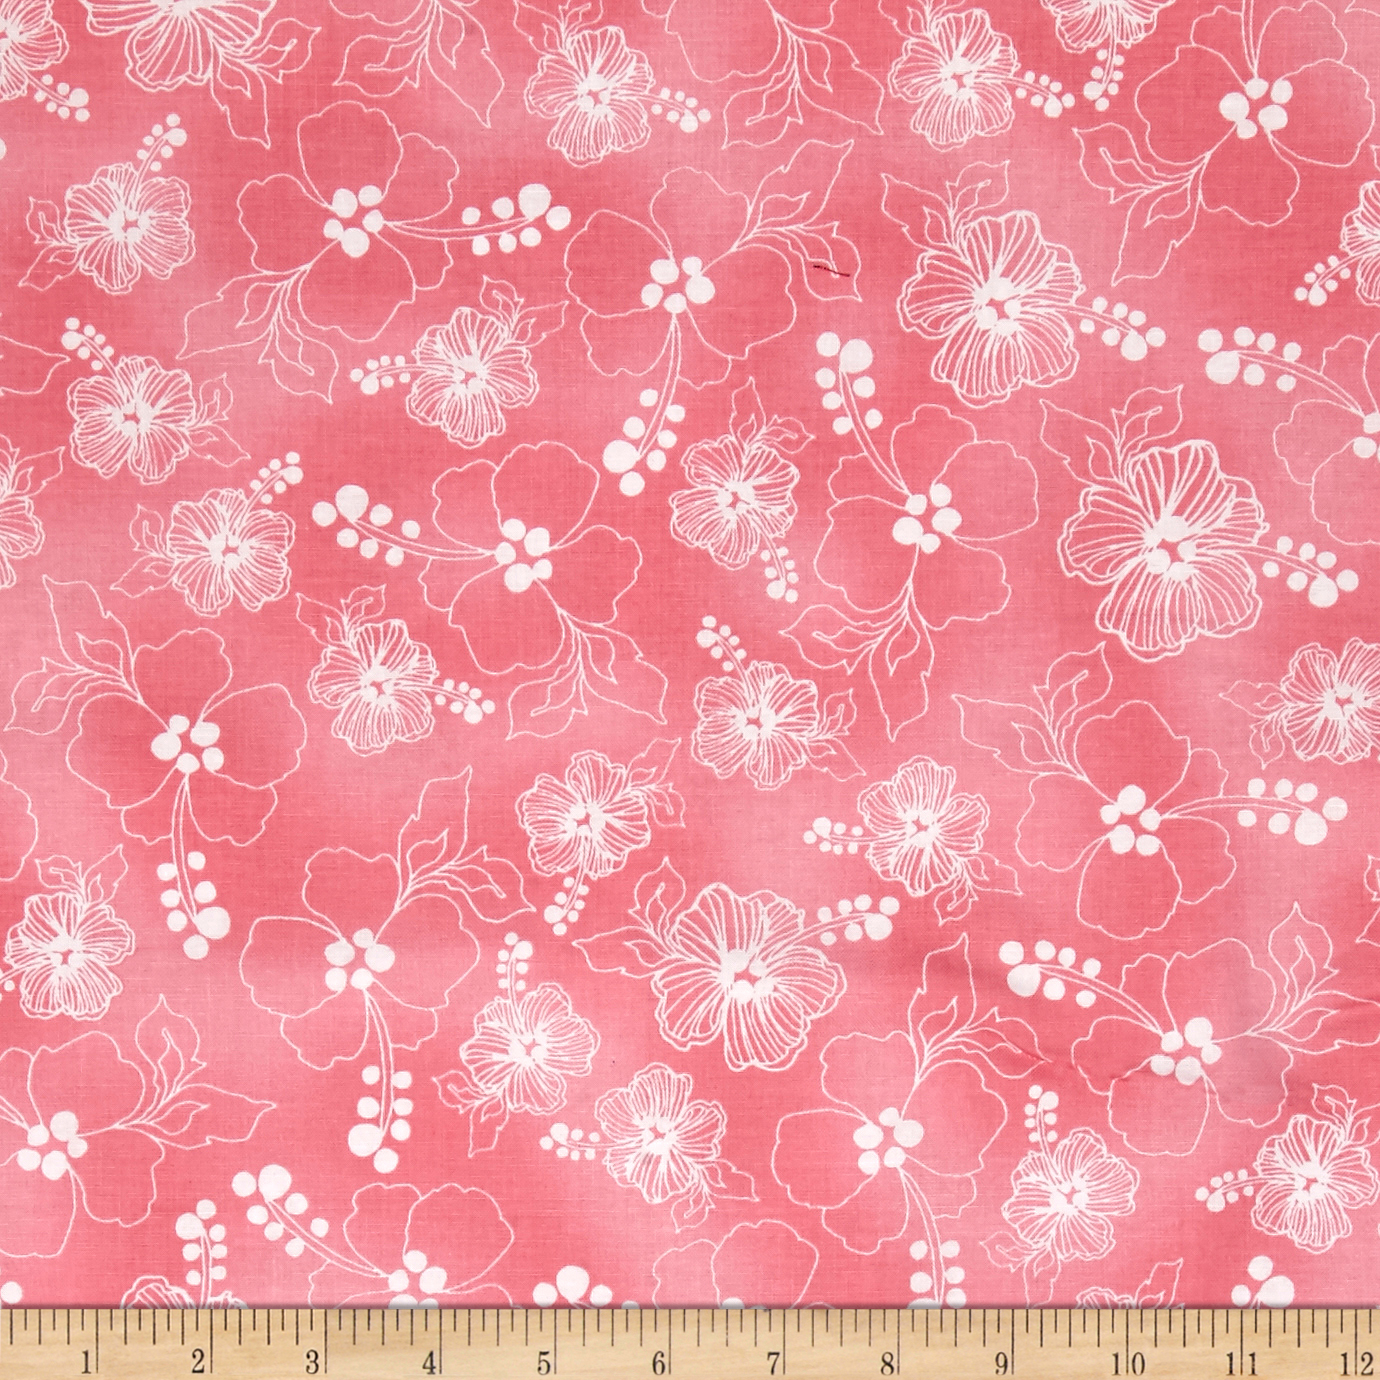 Loralie Designs Hu Lala Lacey Hibiscus Pink Fabric by E. E. Schenck in USA